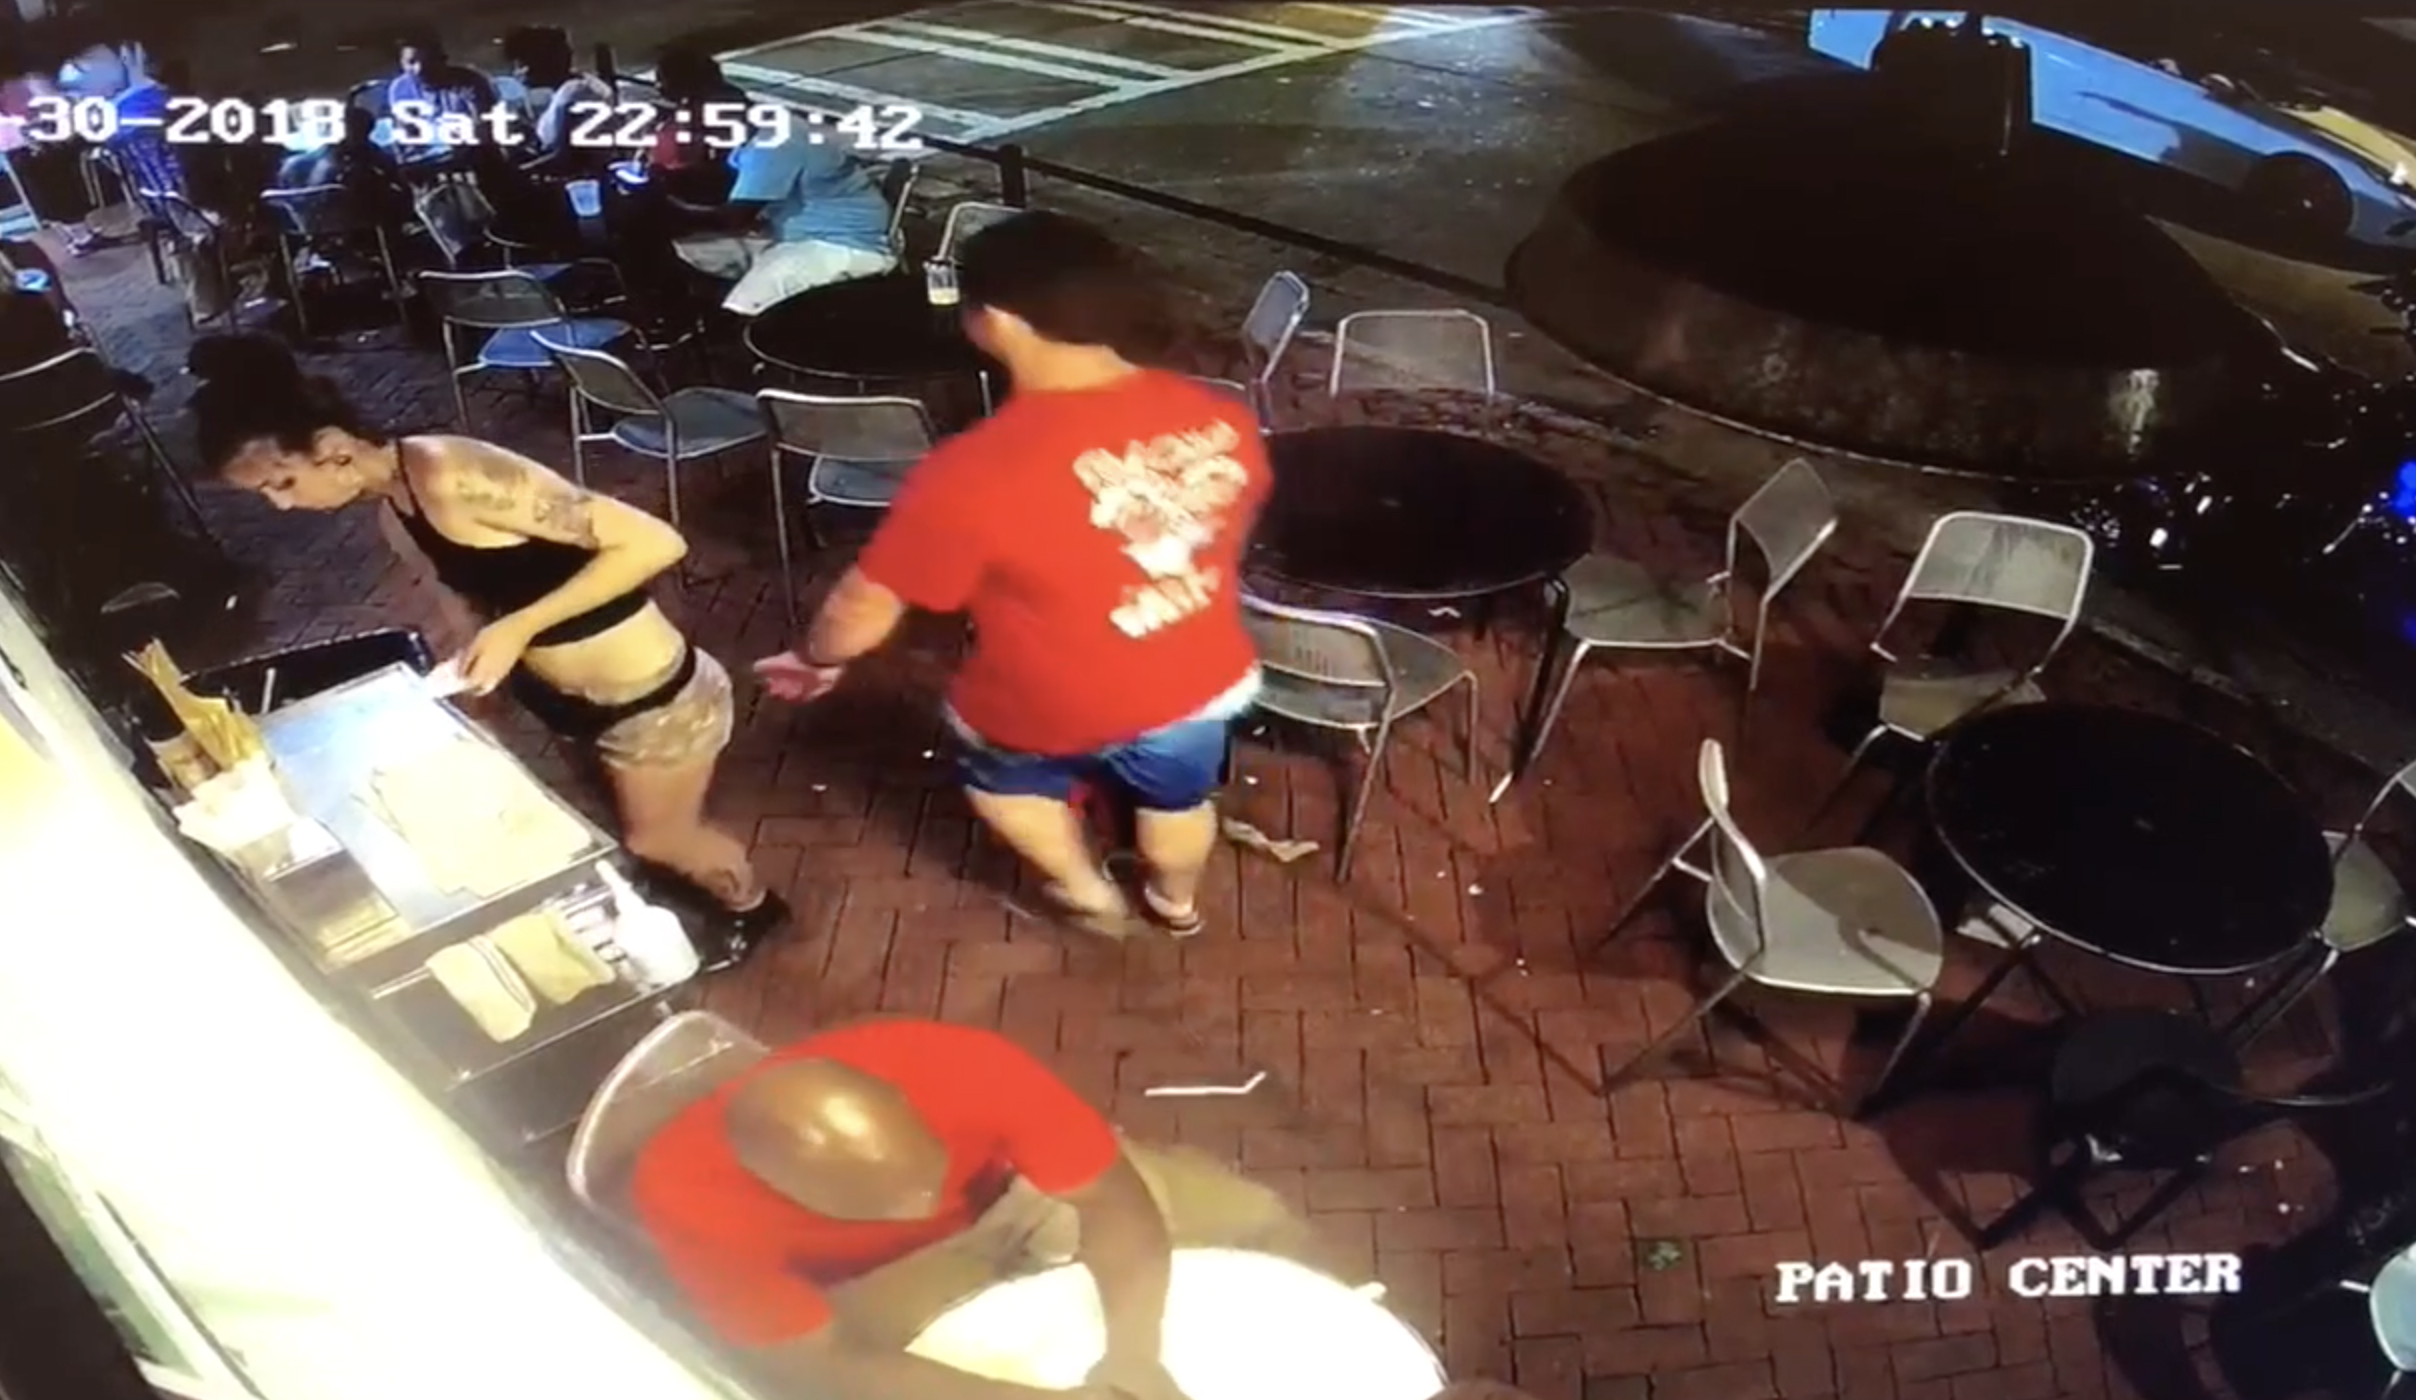 Waitress pushes man against a wall for groping her; gets him arrested